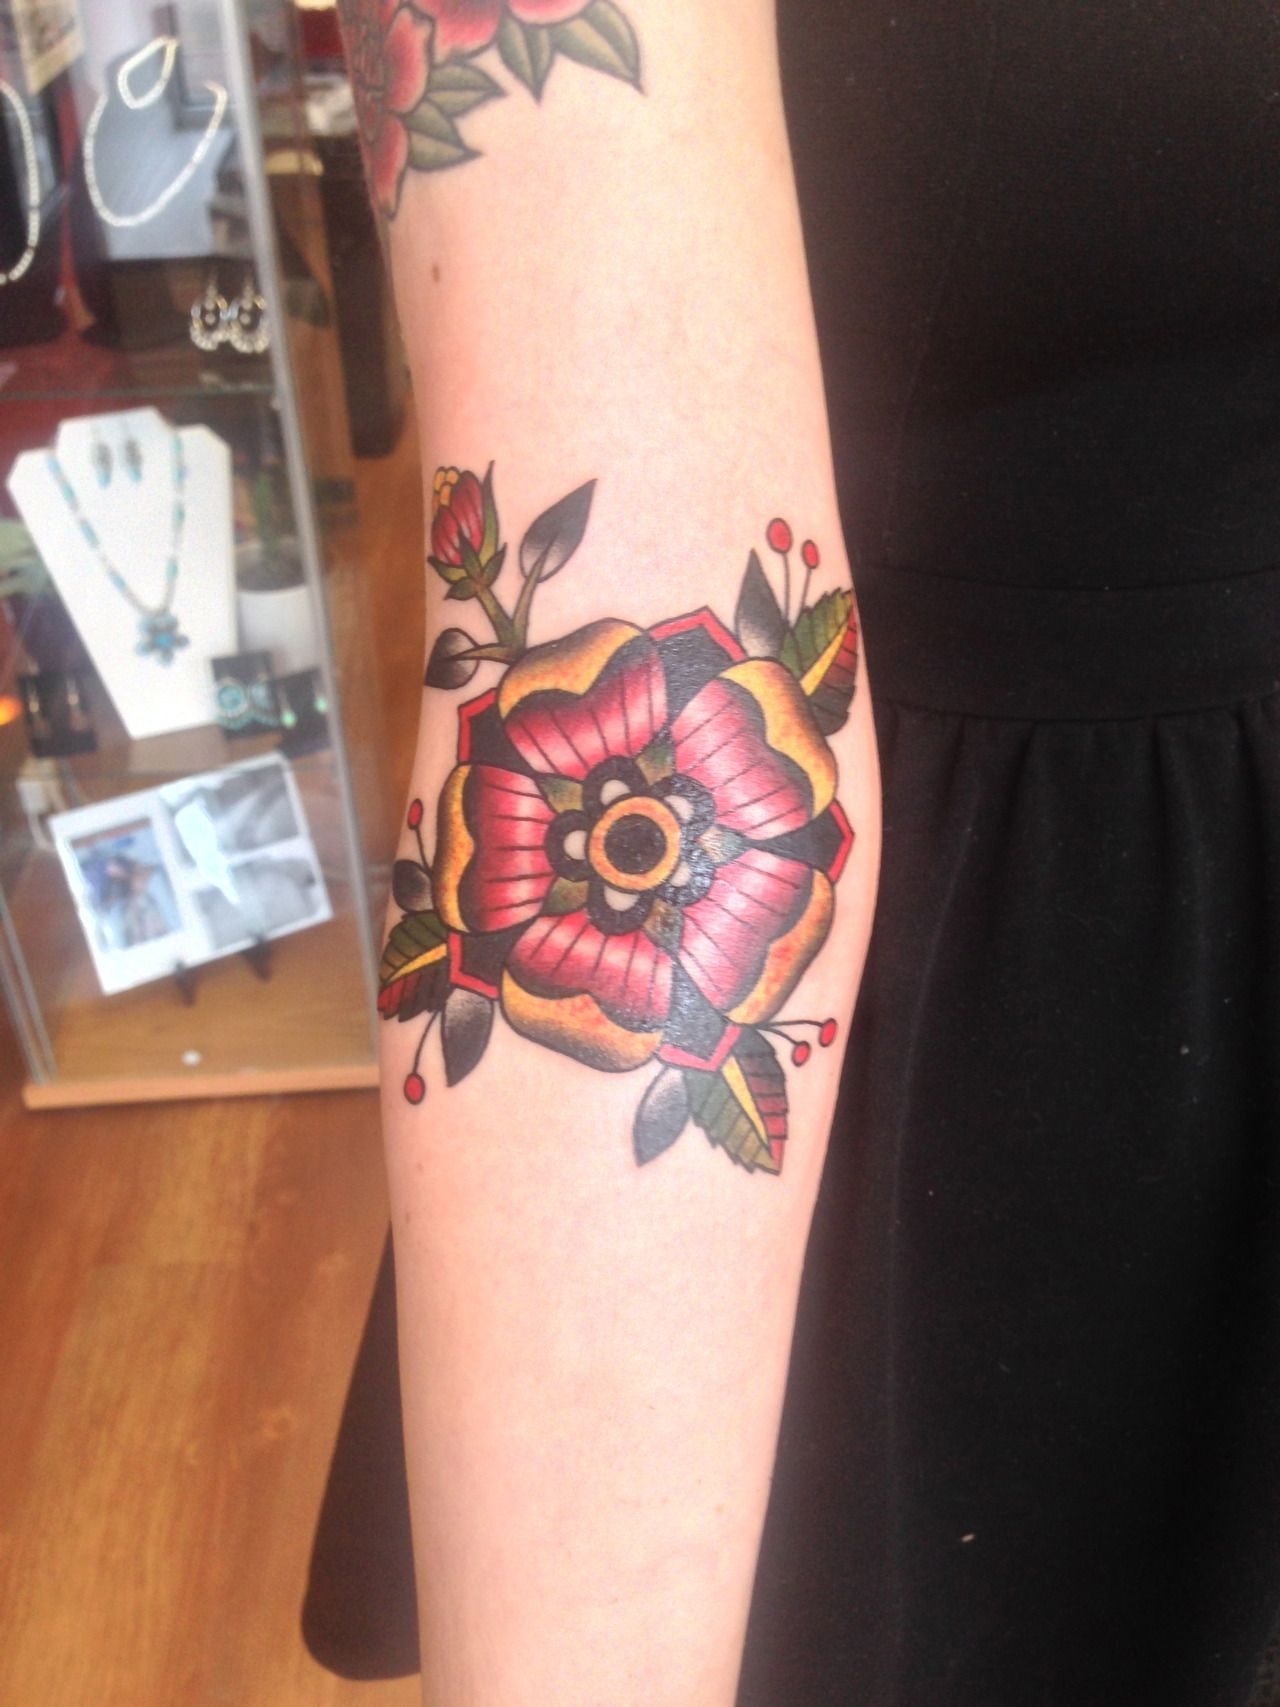 By lenny at white lotus tattoo in fredericton new brunswick by lenny at white lotus tattoo in fredericton new brunswick izmirmasajfo